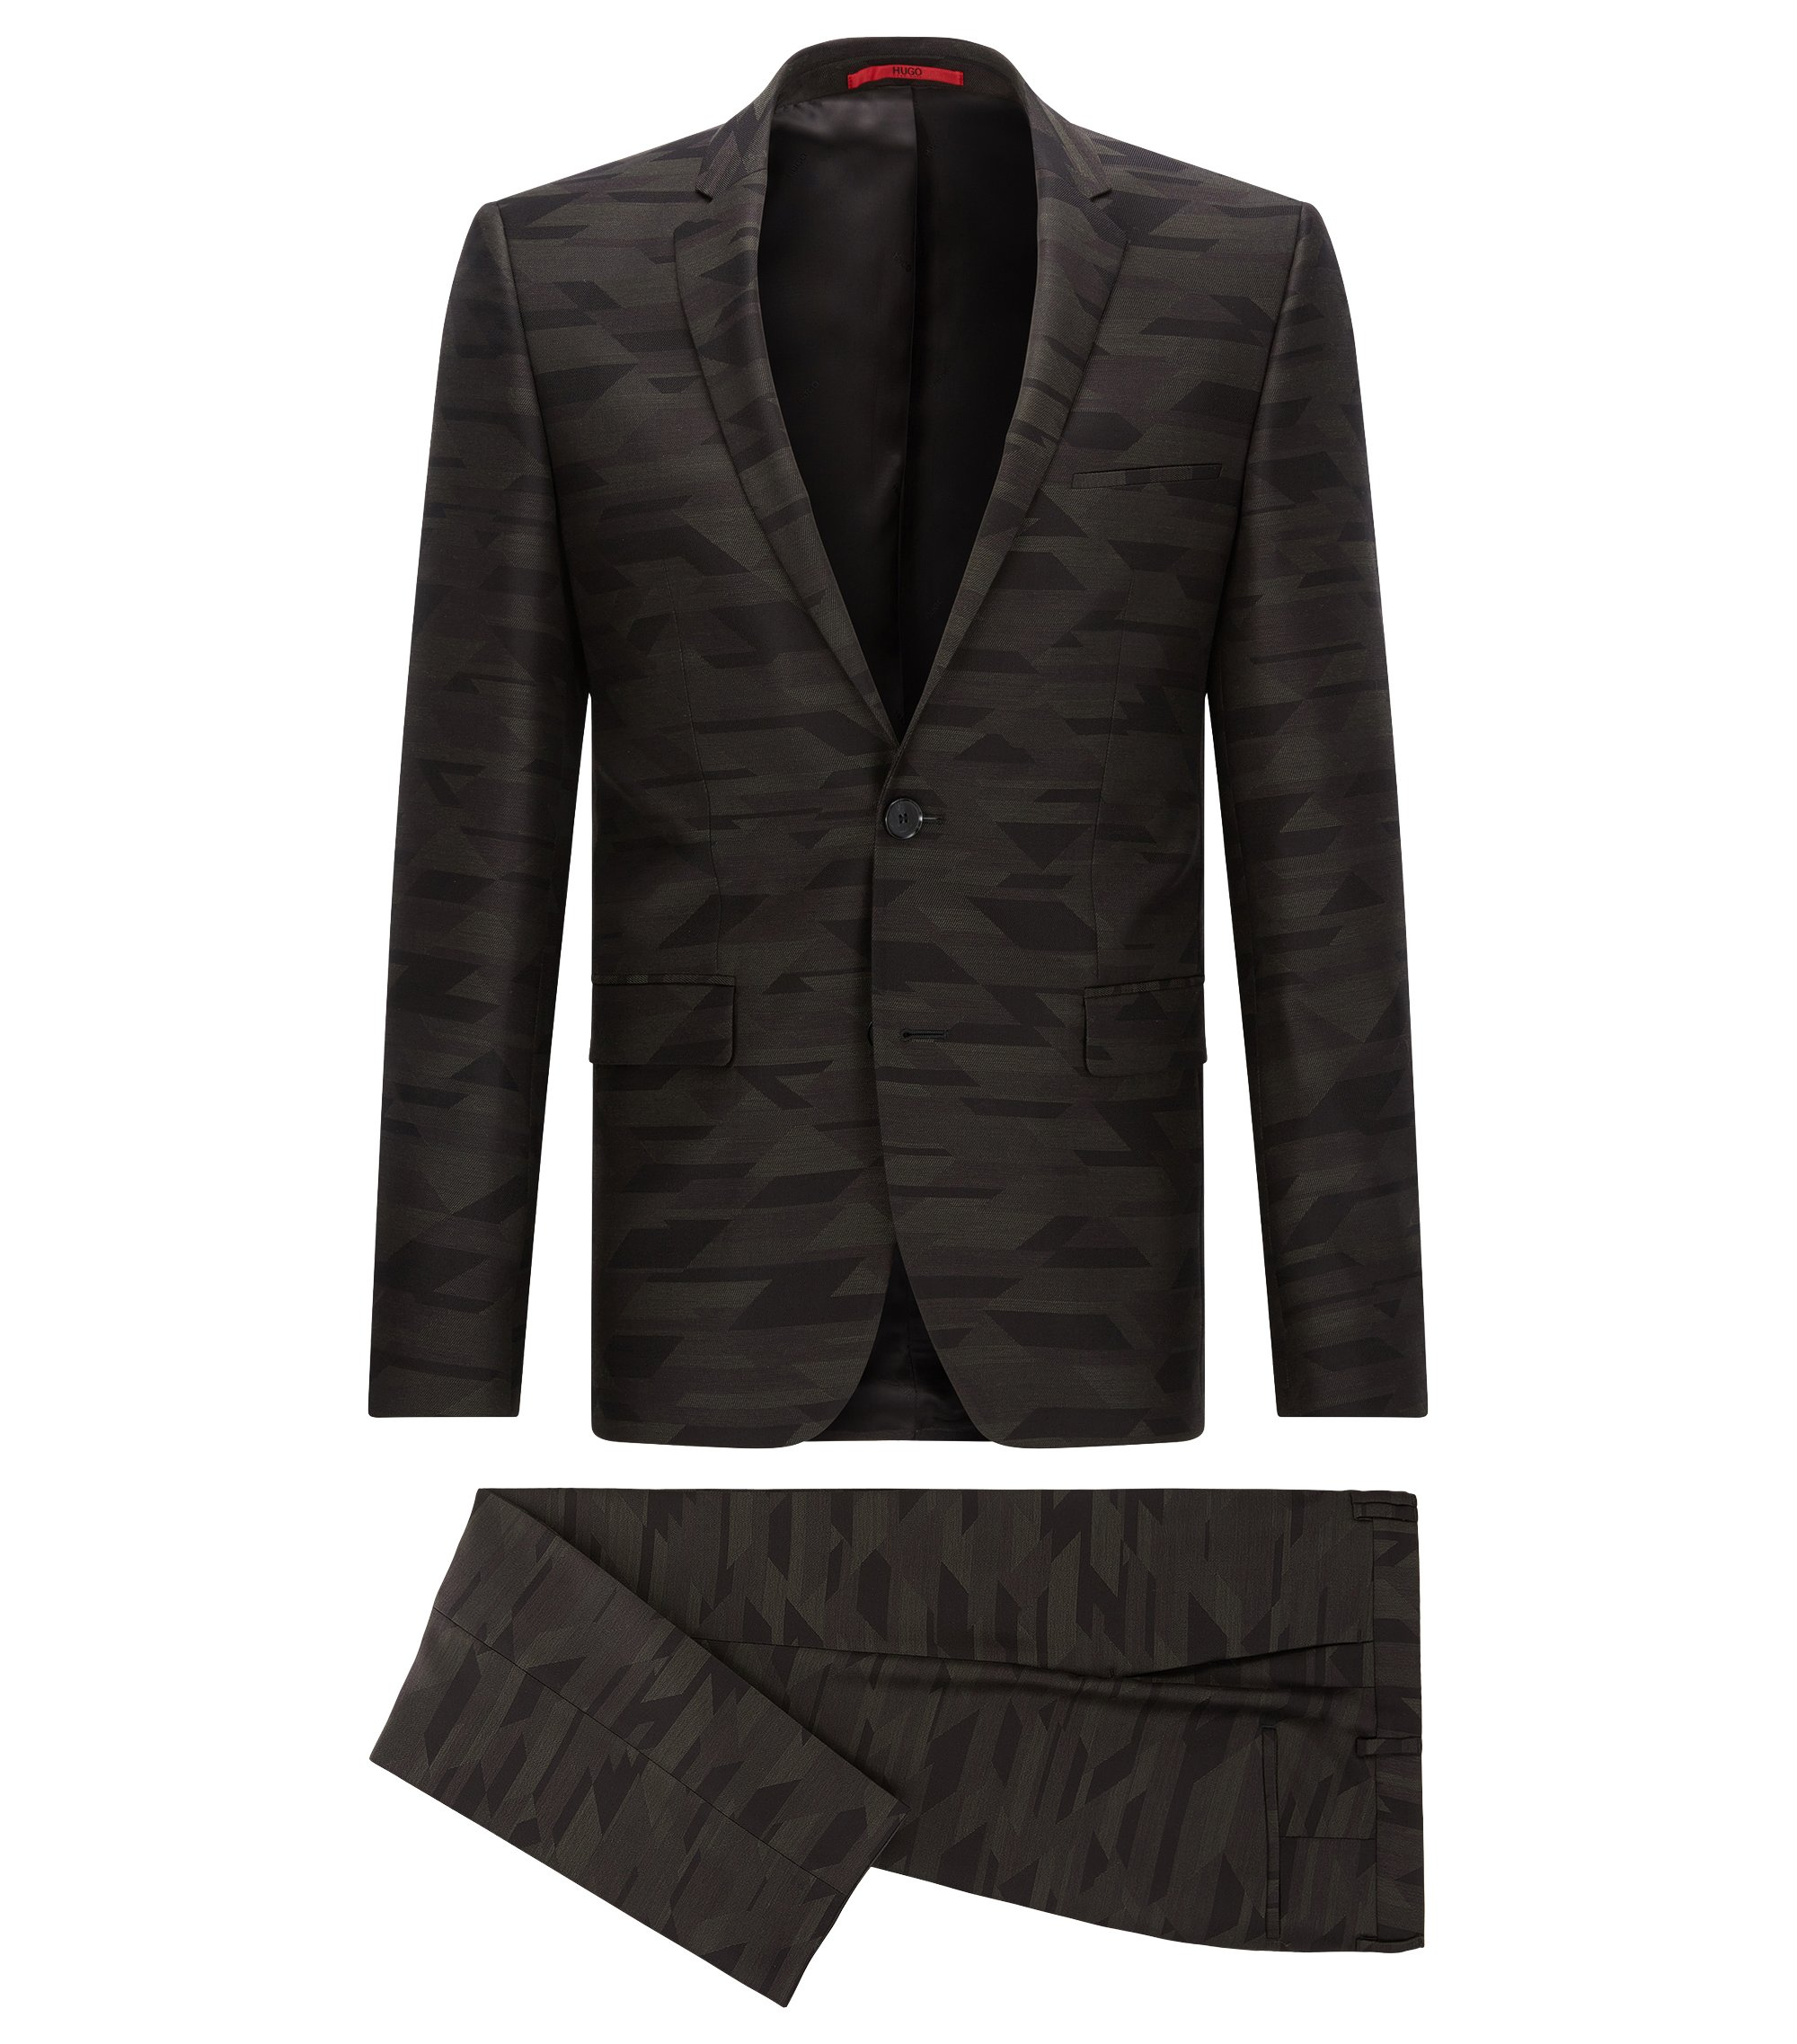 Geometric Virgin Wool Suit, Extra Slim Fit | Adris/Heilon, Patterned